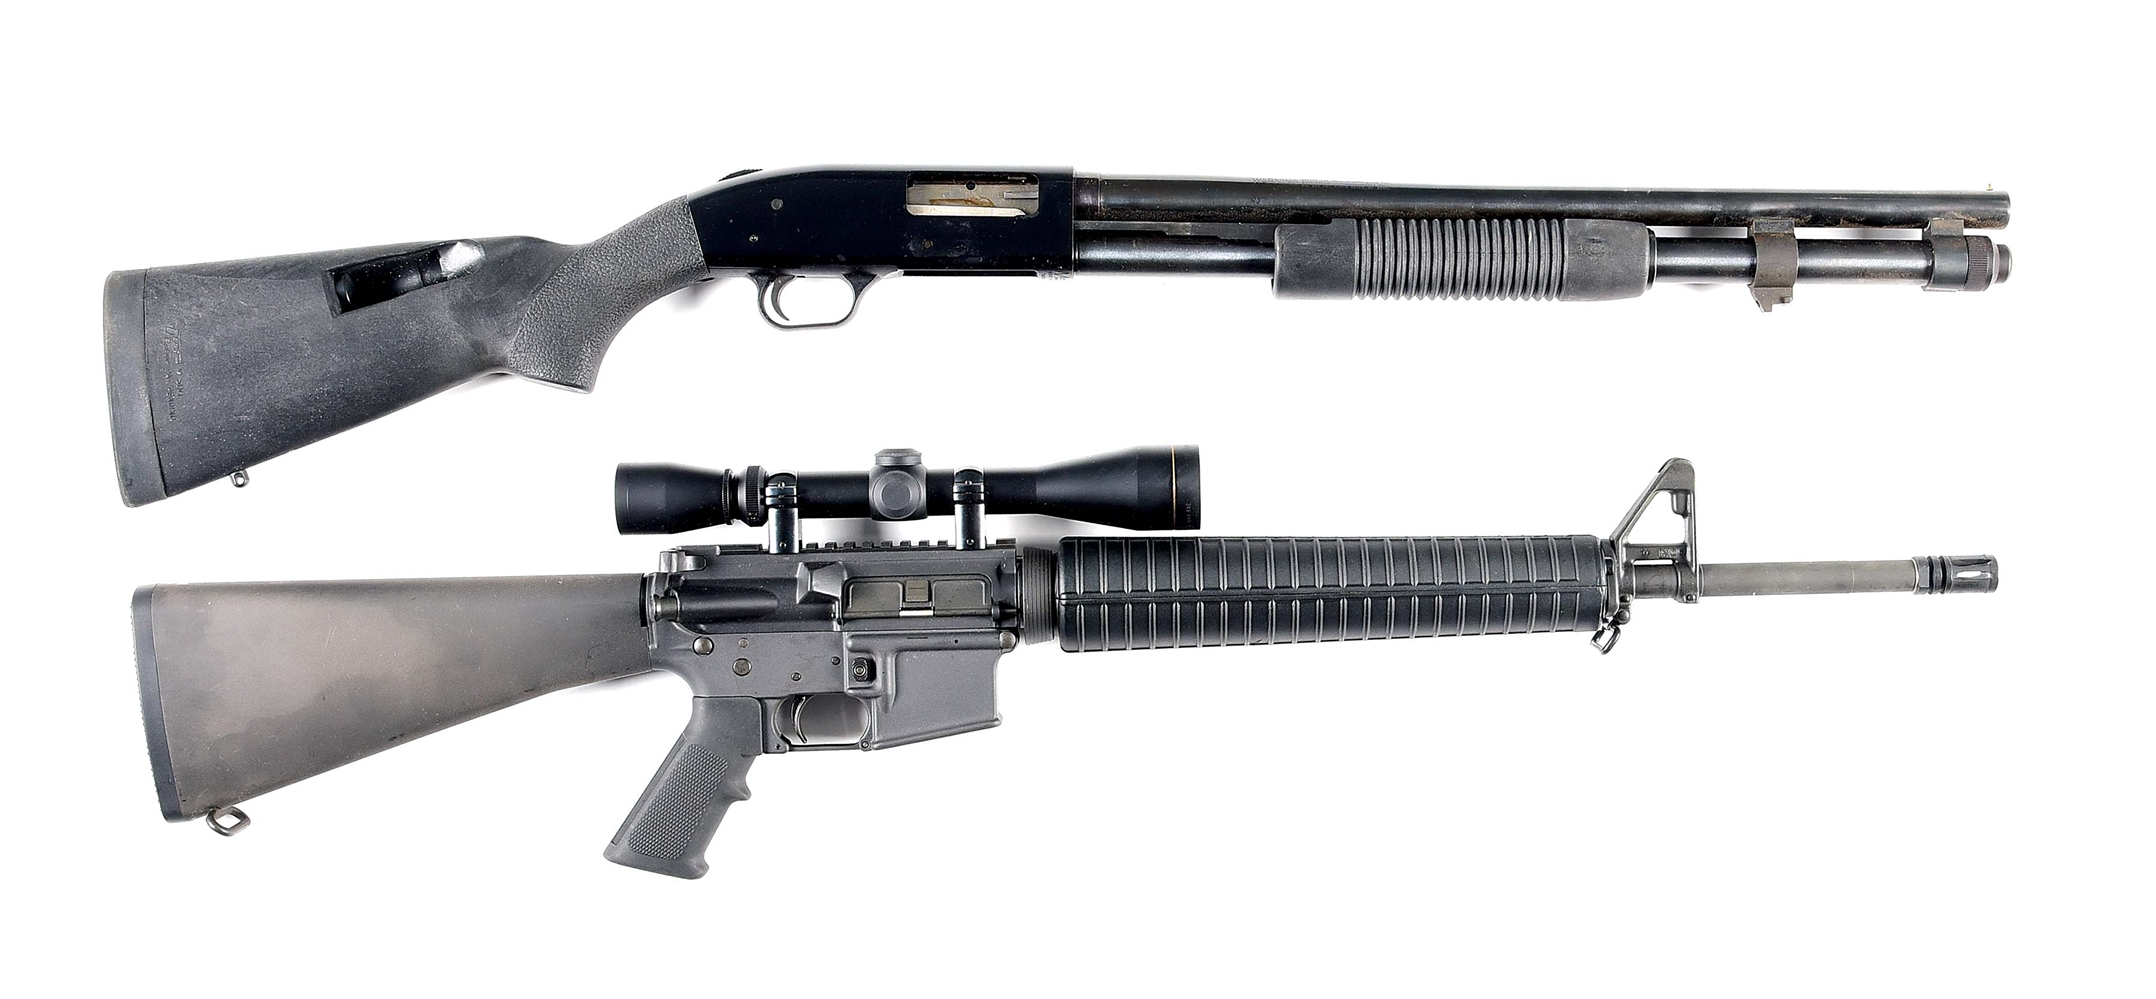 (M) LOT OF 2: MOSSBERG 500A SHOTGUN AND COLT COMPETITION H BAR SEMI AUTOMATIC RIFLE.